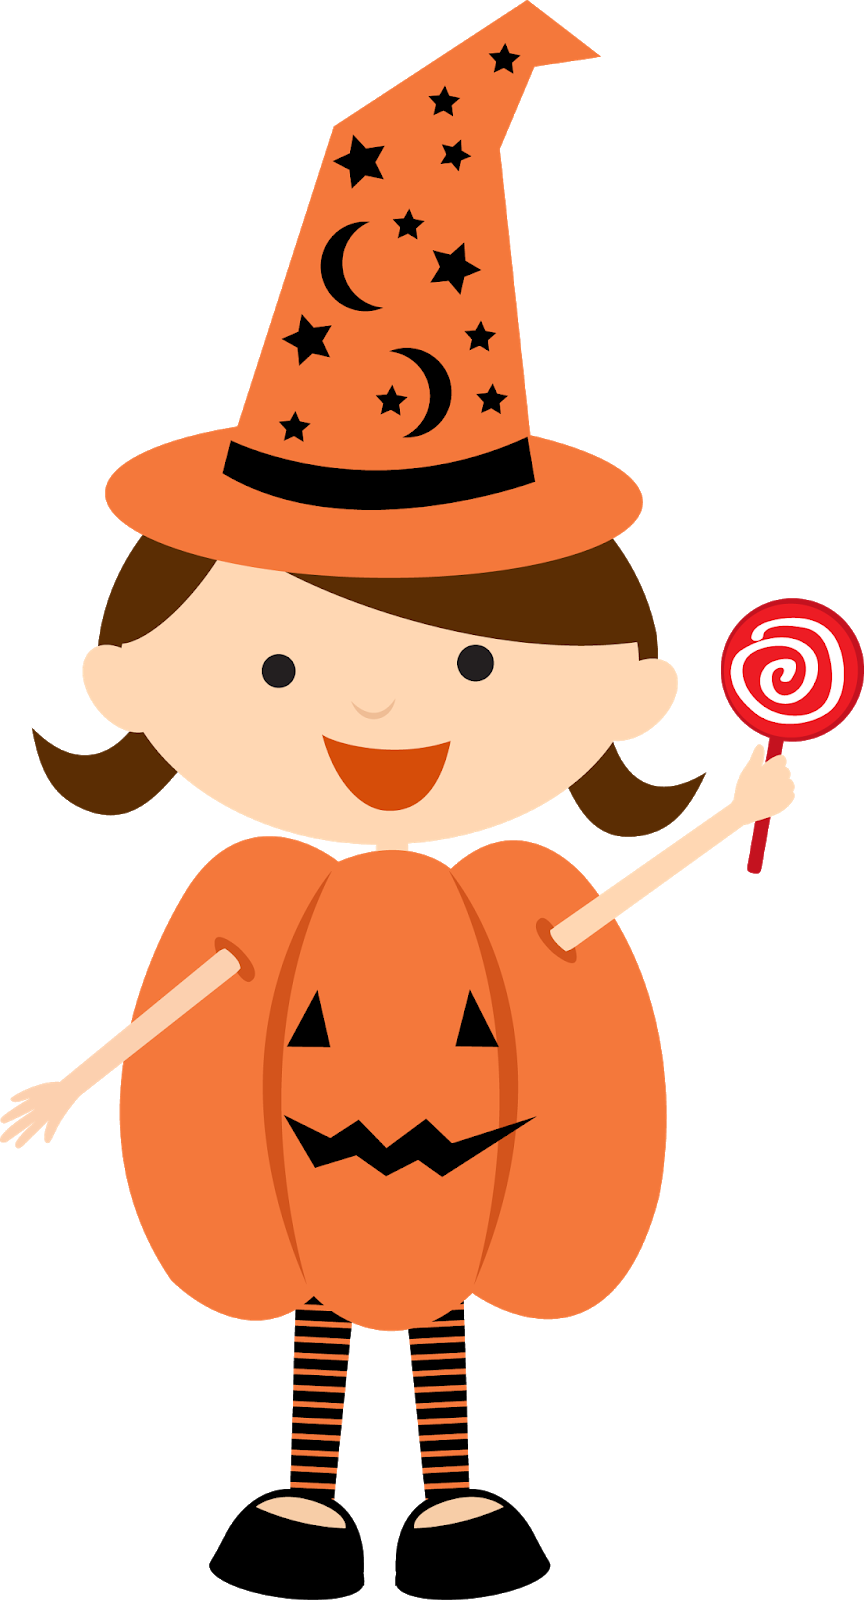 Children Dressed for Halloween Clipart. - Oh My Fiesta! in ...